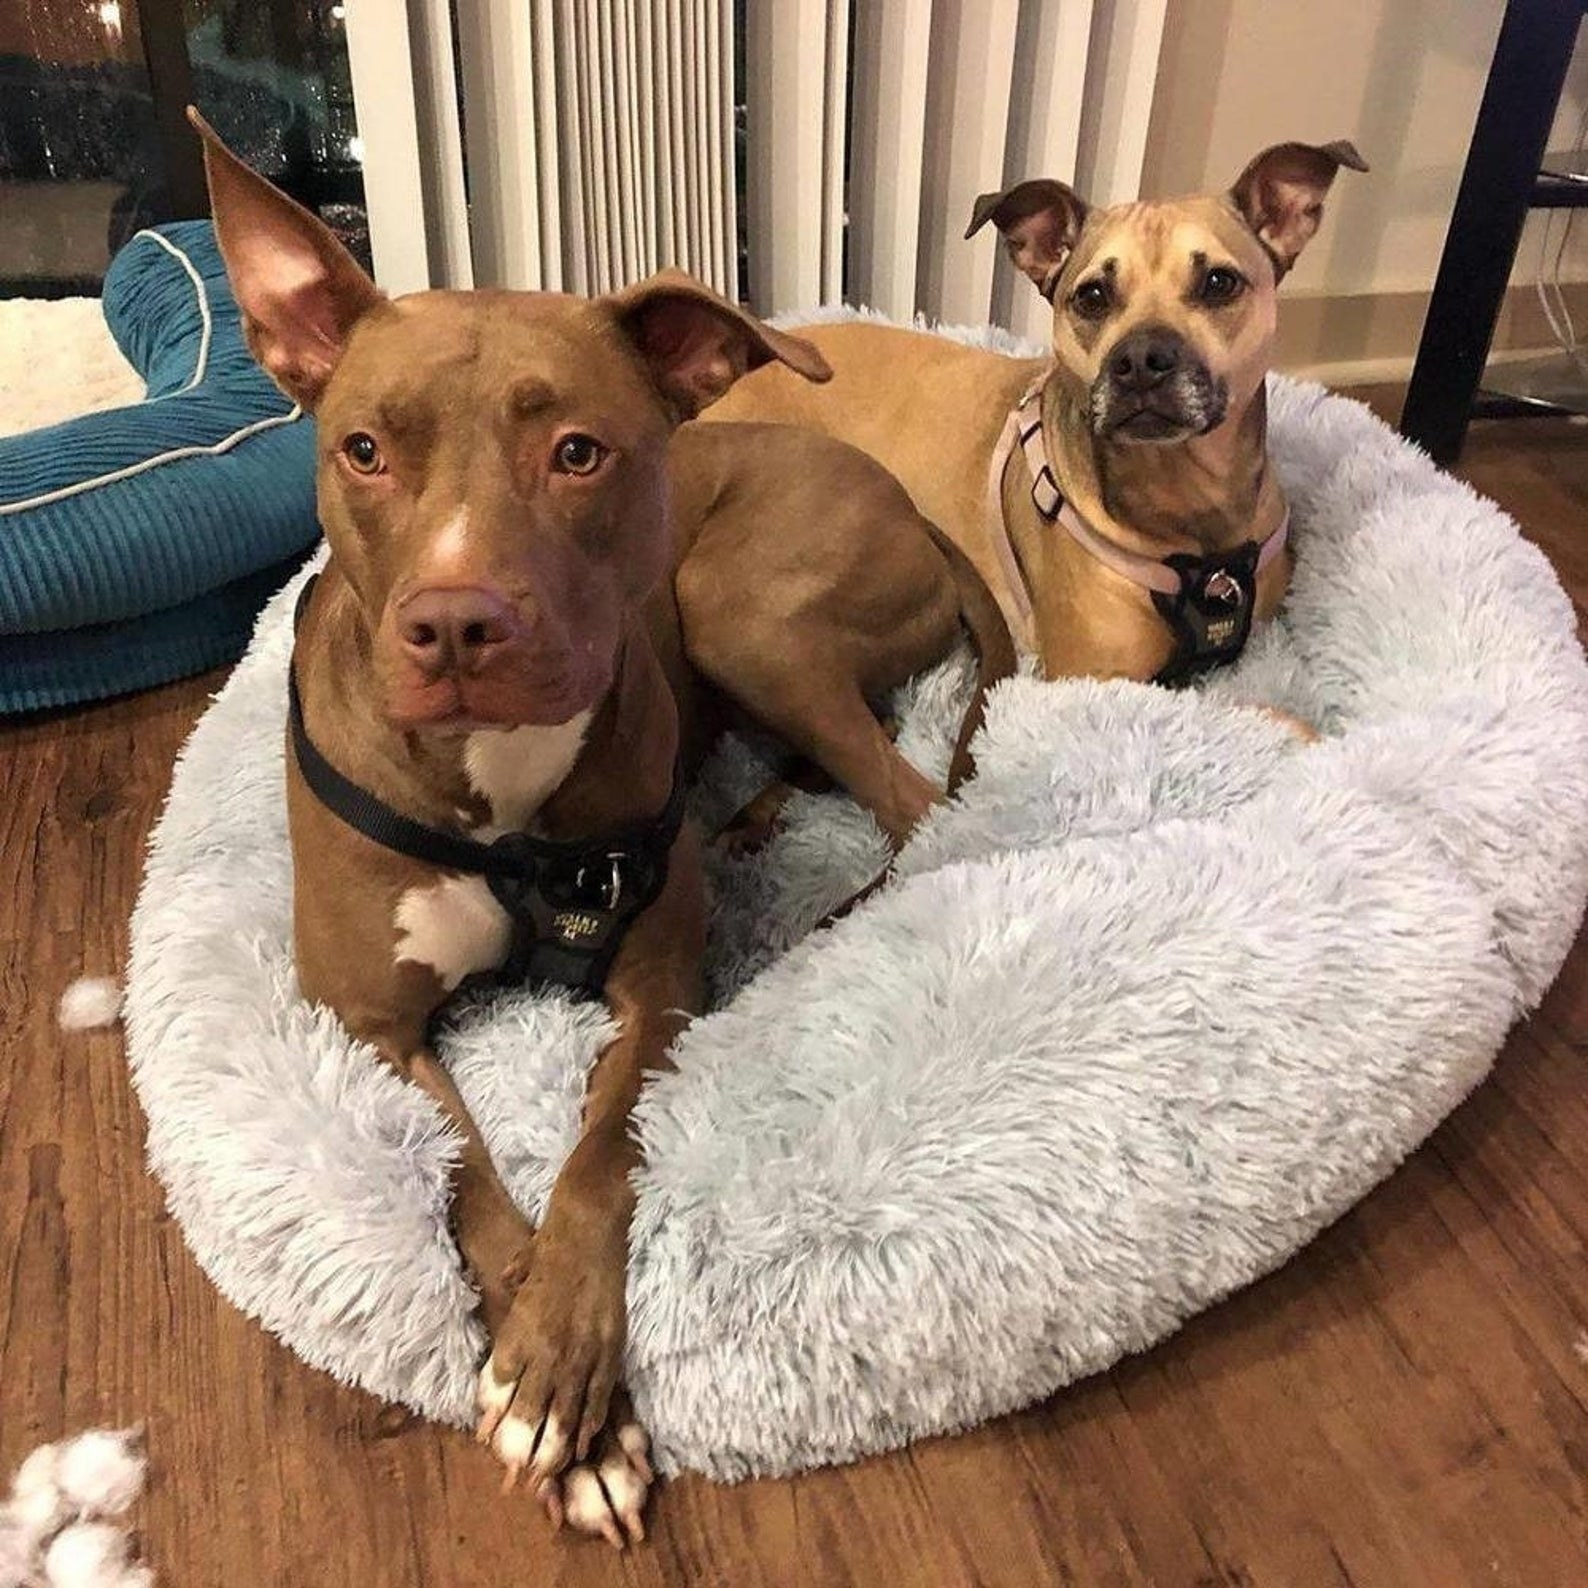 Two dogs sitting on the pet bed